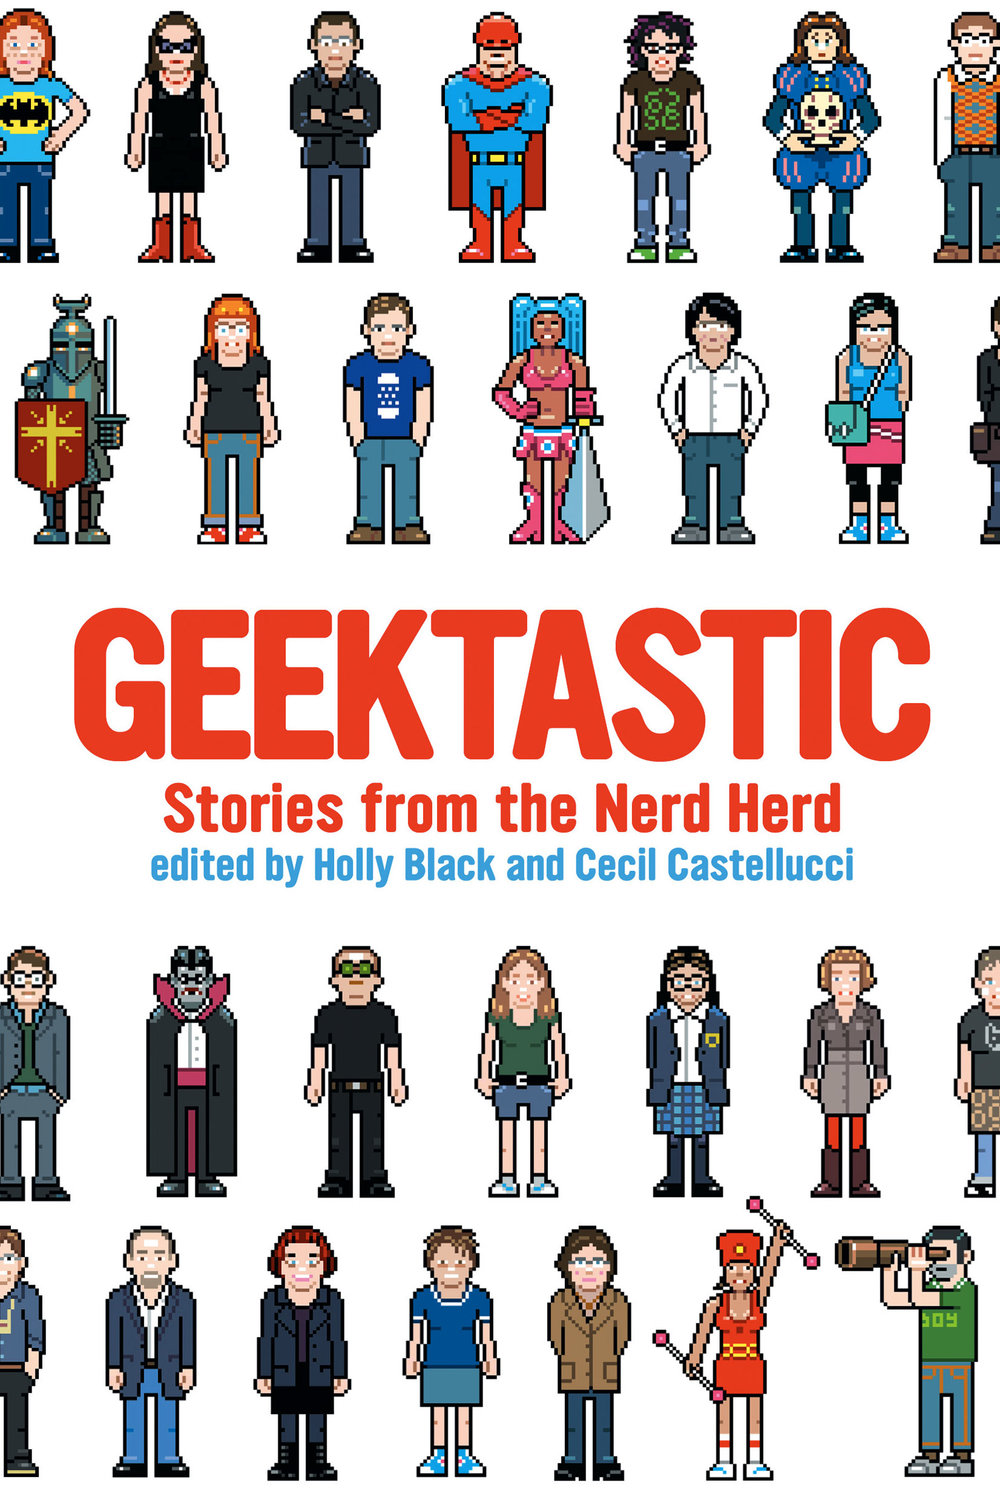 Geektastic edited by H. Black and C. Castellucci Designed by Ben Mautner for Little, Brown Custom characters by eBoy